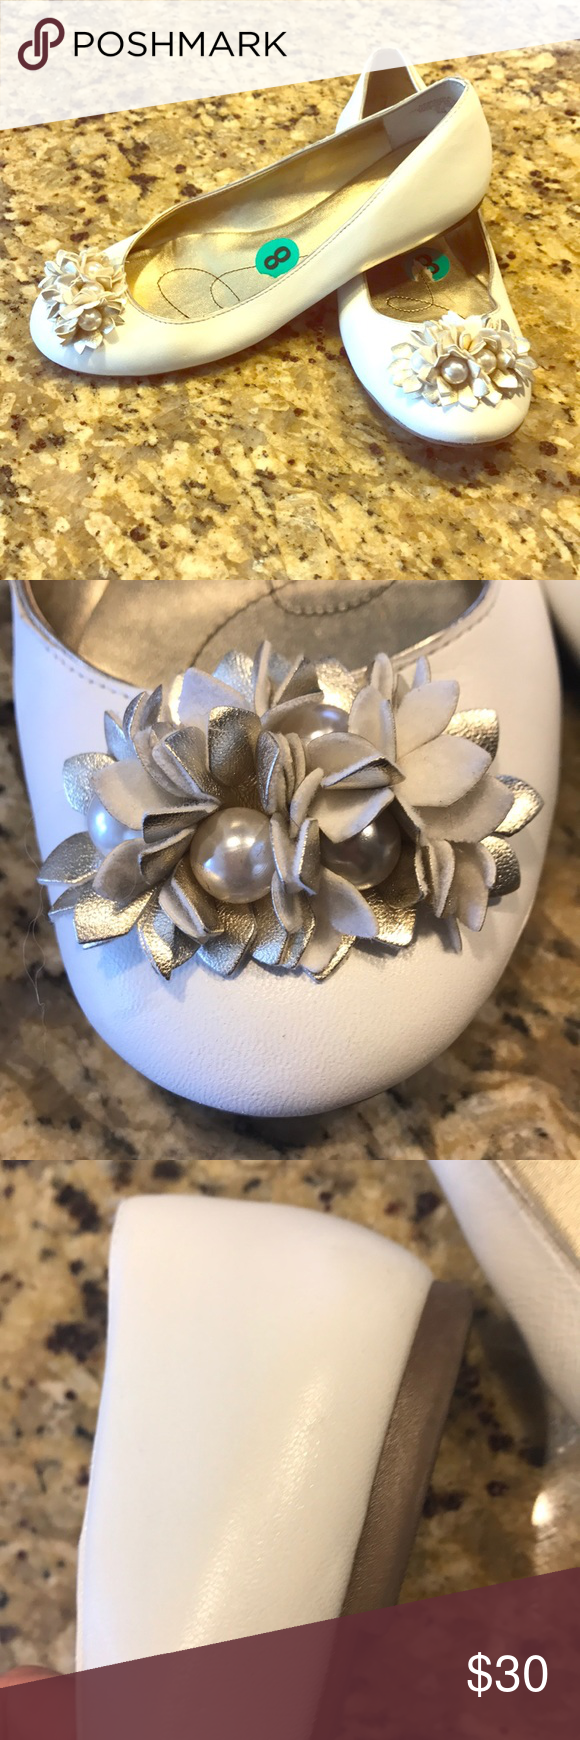 Anne Klein white ballet slippers Anne Klein size 8, white ballerina flats with white and gold and white decorative florets. Only worn a few times. And in great condition. There are some scuffs that can be covered with shoe polish. I have included detailed photos. Anne Klein Shoes Flats & Loafers